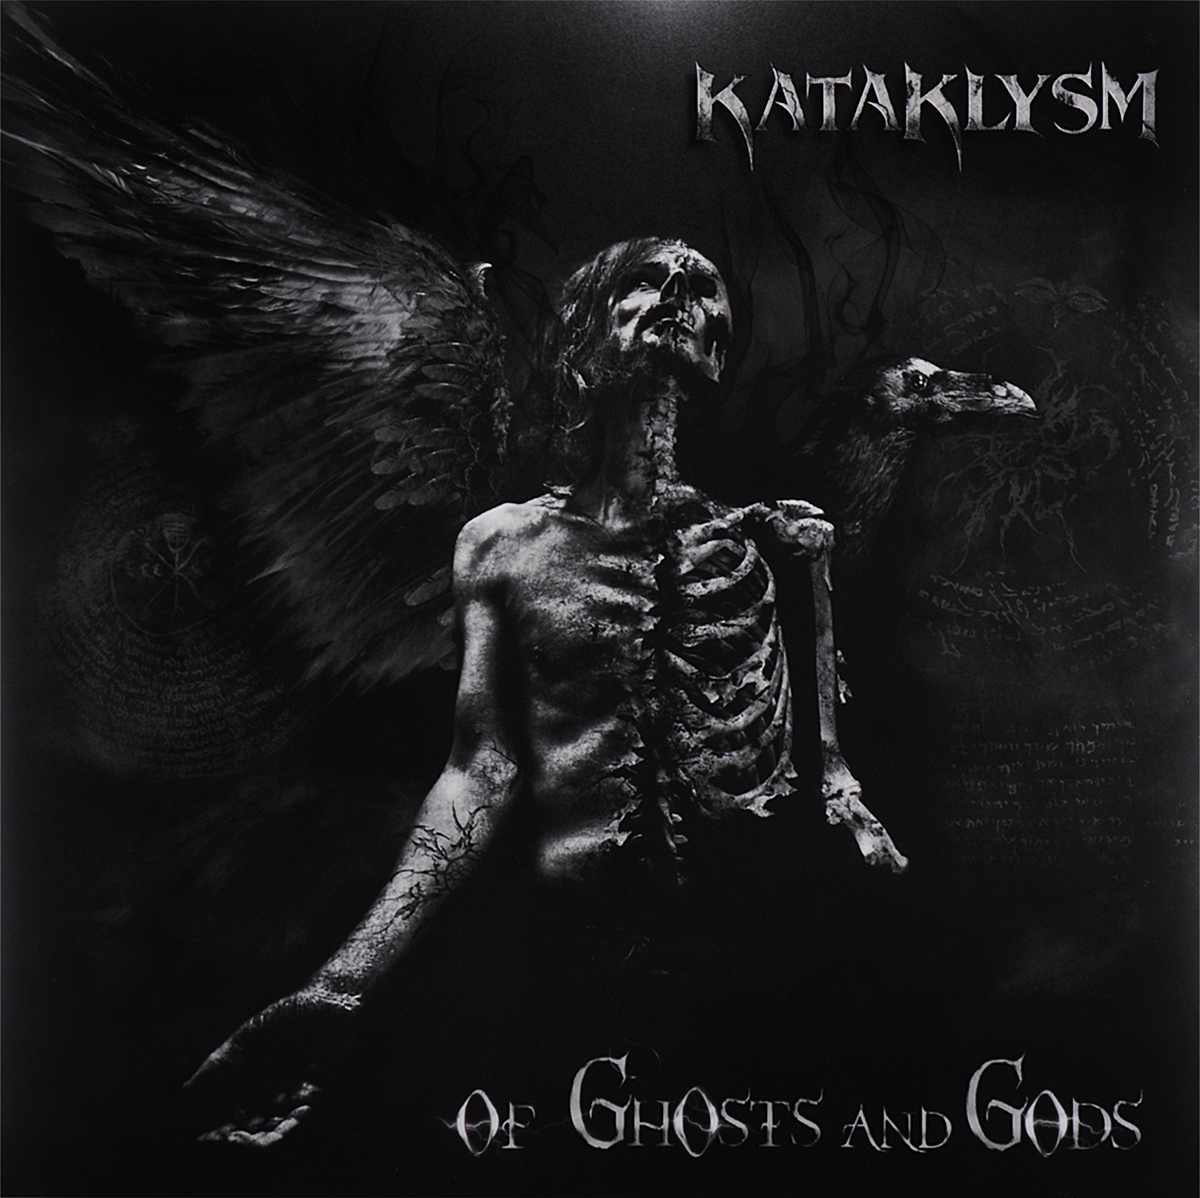 Kataklysm Kataklysm. Of Ghosts And Gods (2 LP) manish solanki synthesis and antimicrobial actvity of 1 4 dihydropyridines